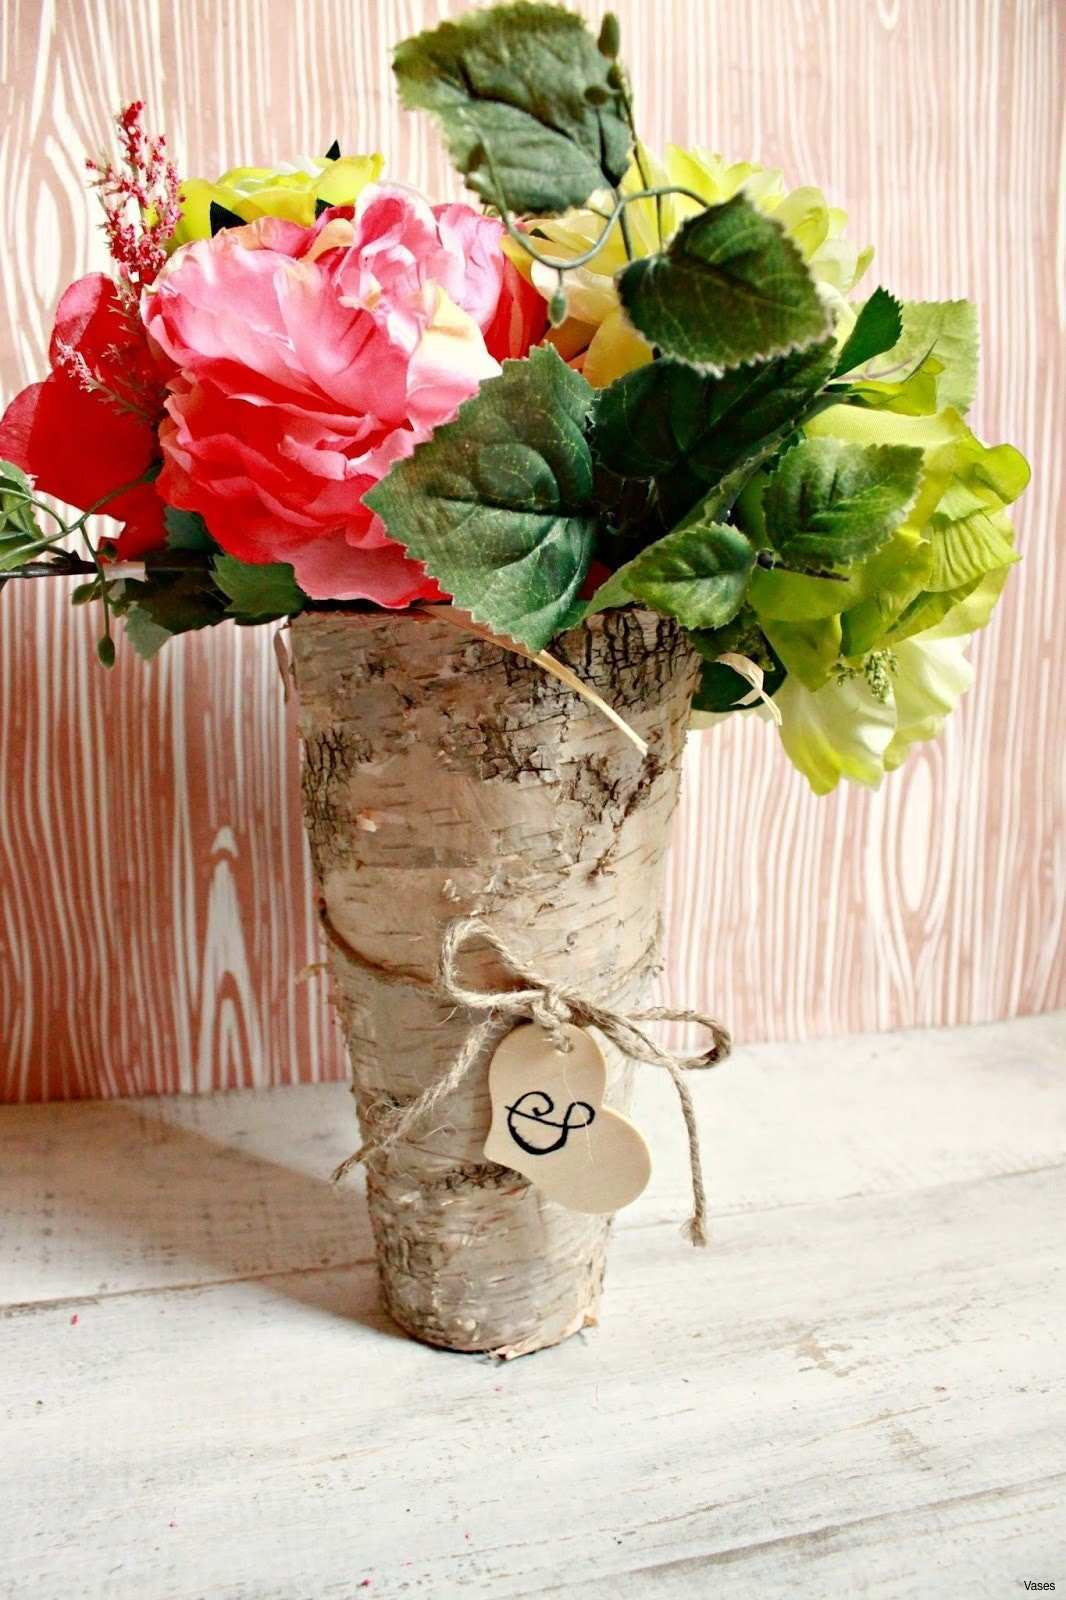 24 Nice Tin Can Vase Ideas 2021 free download tin can vase ideas of build a planter box for vegetables luxury wooden wedding flowers h intended for build a planter box for vegetables luxury wooden wedding flowers h vases diy wood vase i